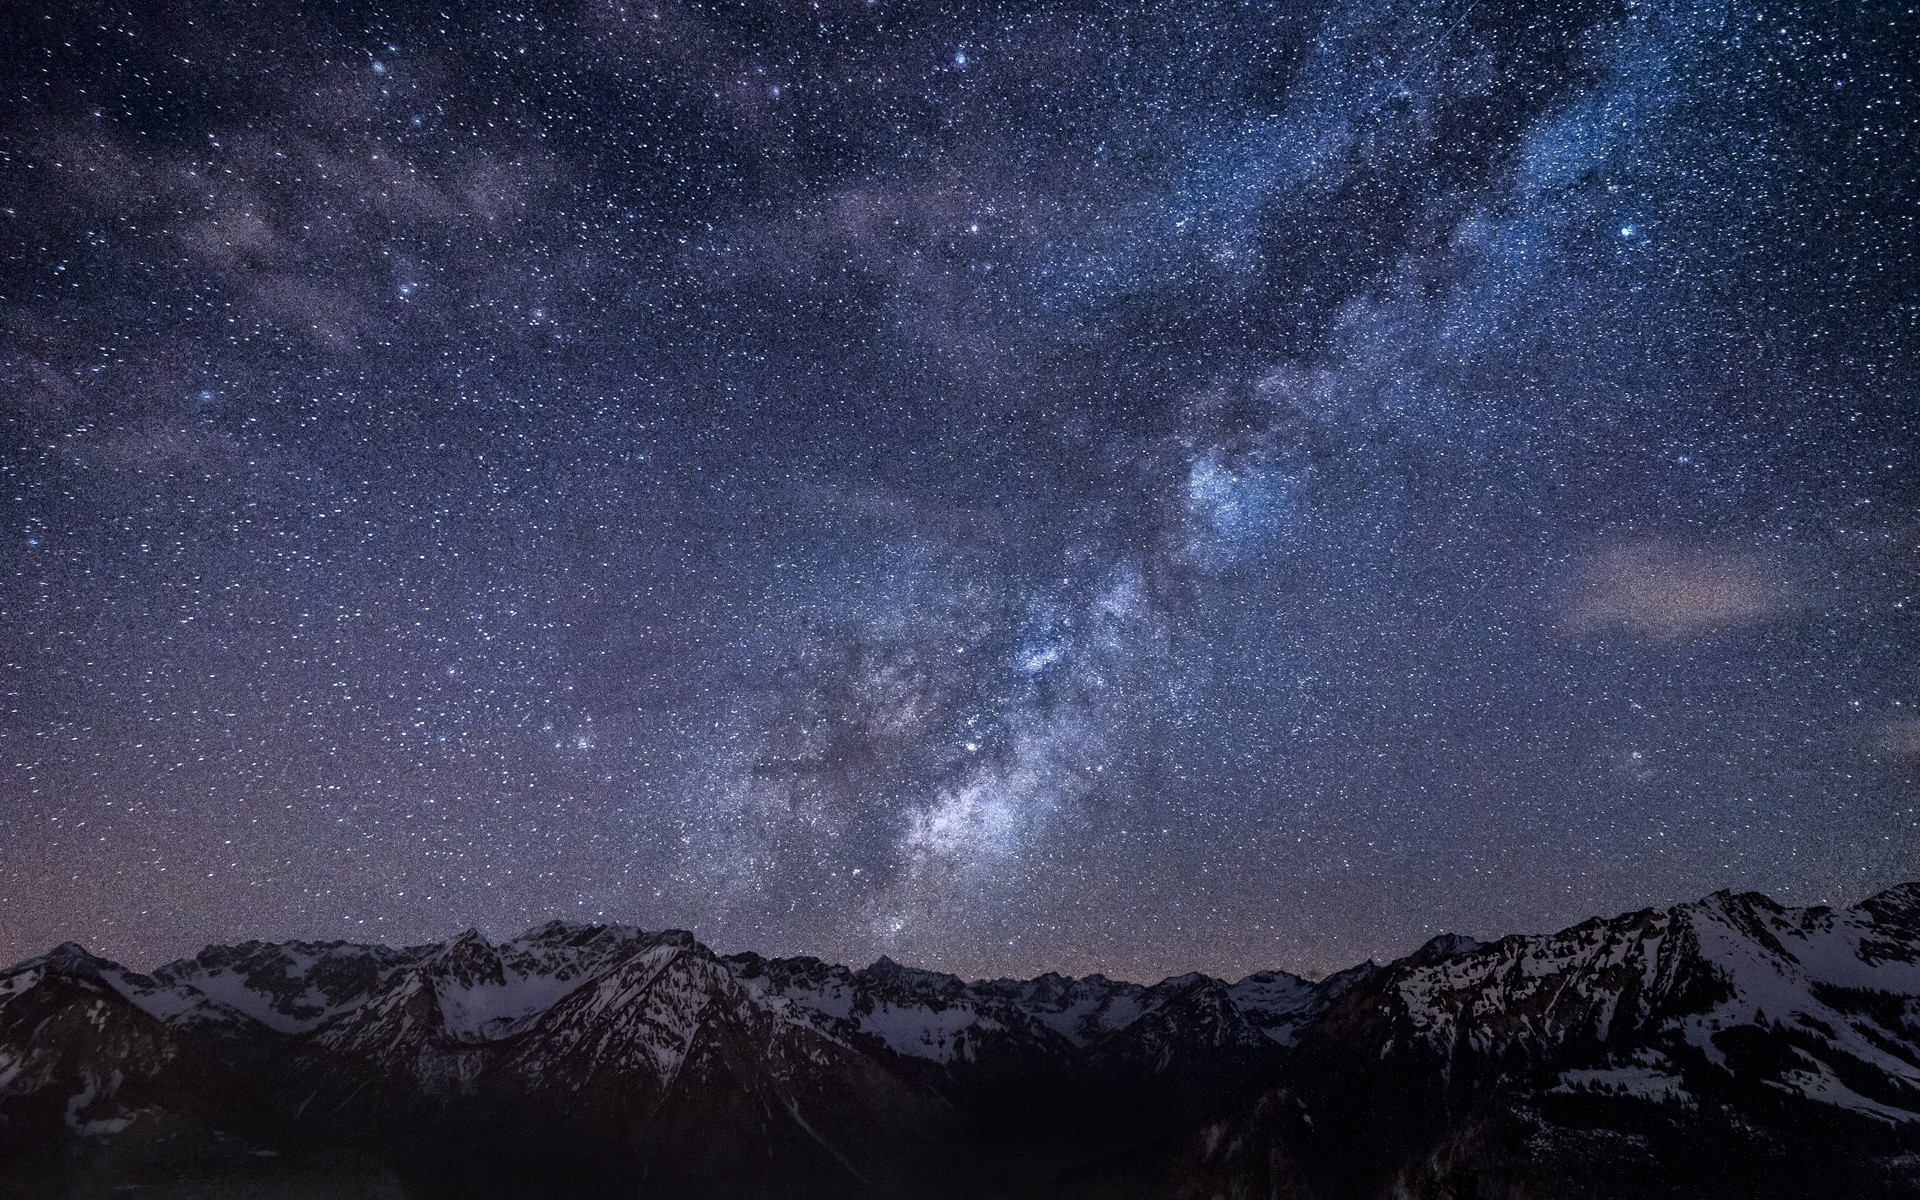 Starry sky above the mountains wallpaper, Starry sky above the mountains  Nature HD desktop wallpaper